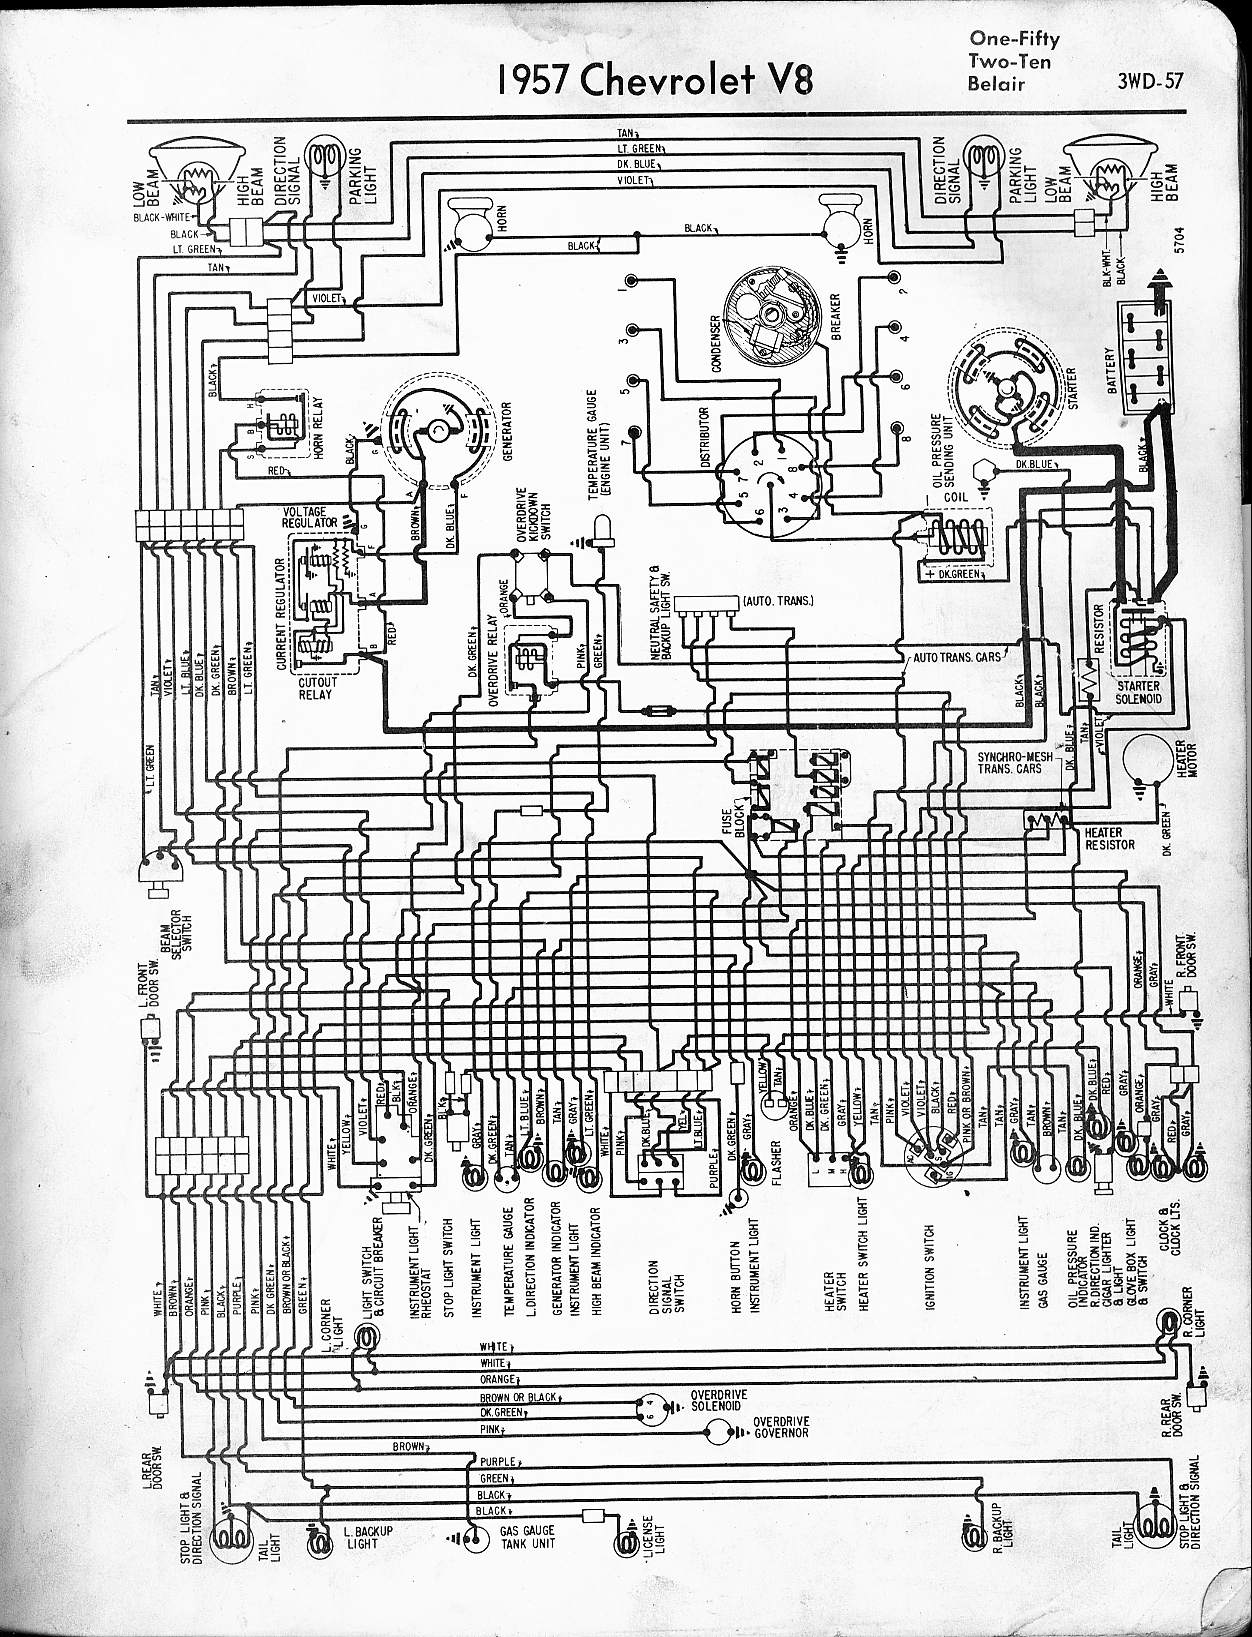 MWireChev57_3WD 057 57 65 chevy wiring diagrams 1957 chevy fuel gauge wiring diagram at creativeand.co